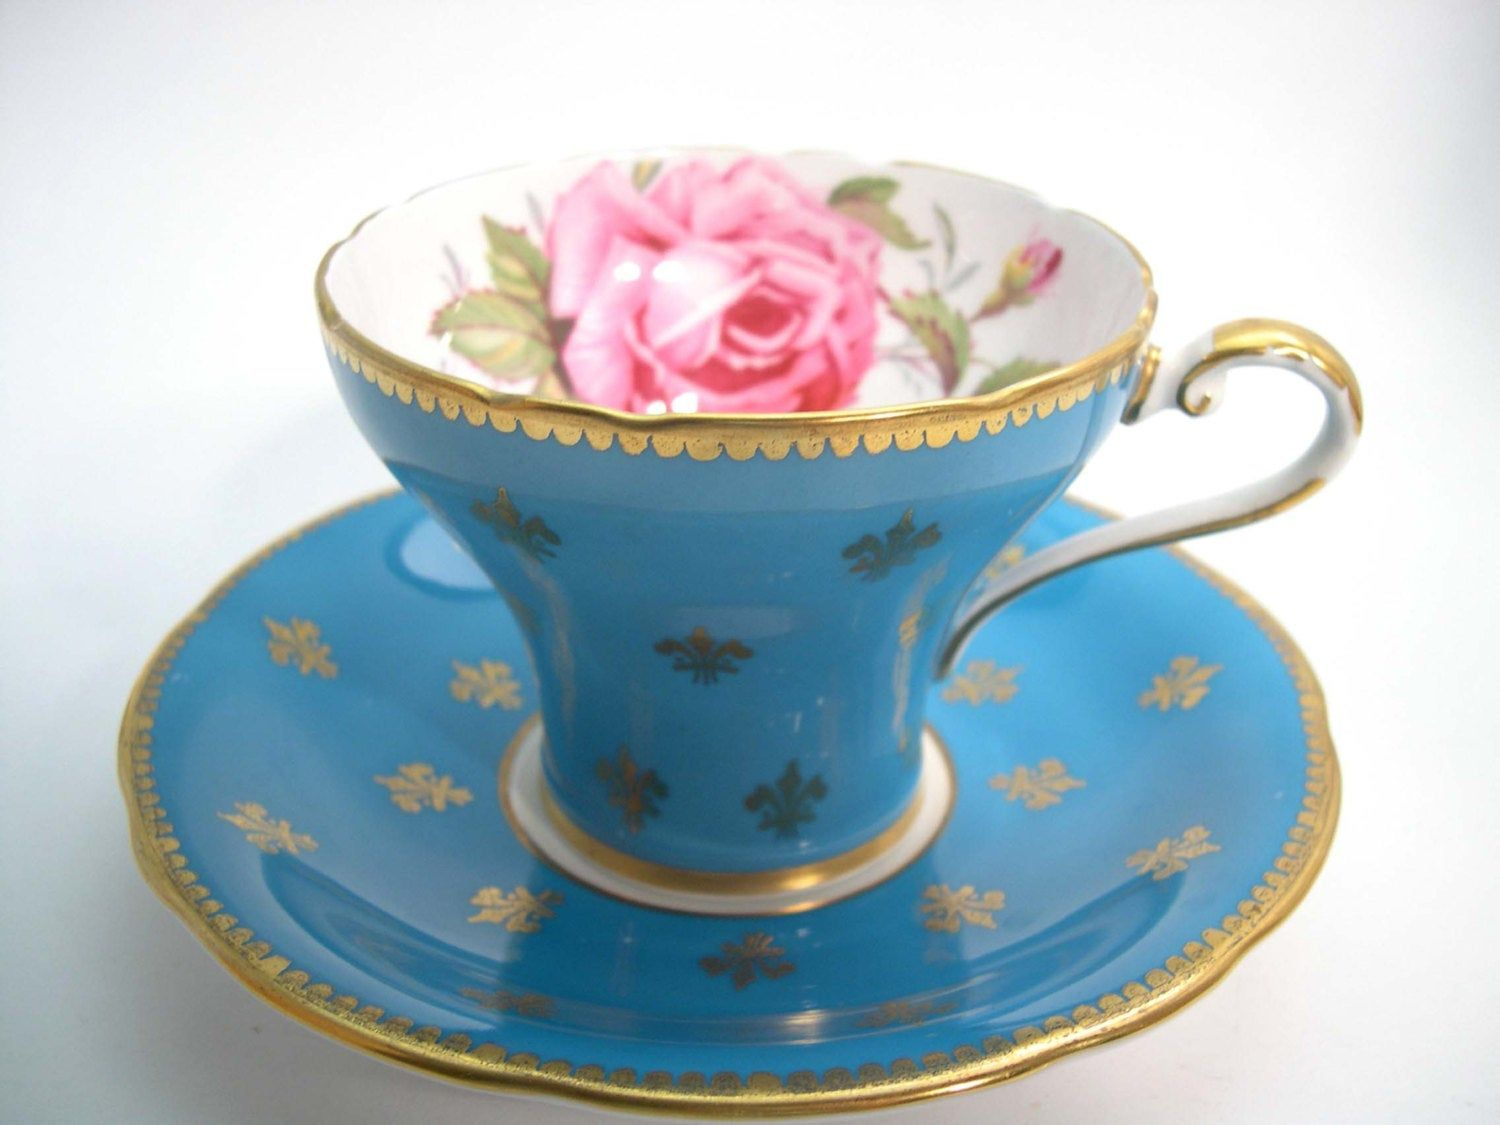 Aynsley tea cup and saucer with Fleur de Lis, Turquoise Blue and gold tea cup set, Pink Rose and Gold Fleur-de-lis #teacups